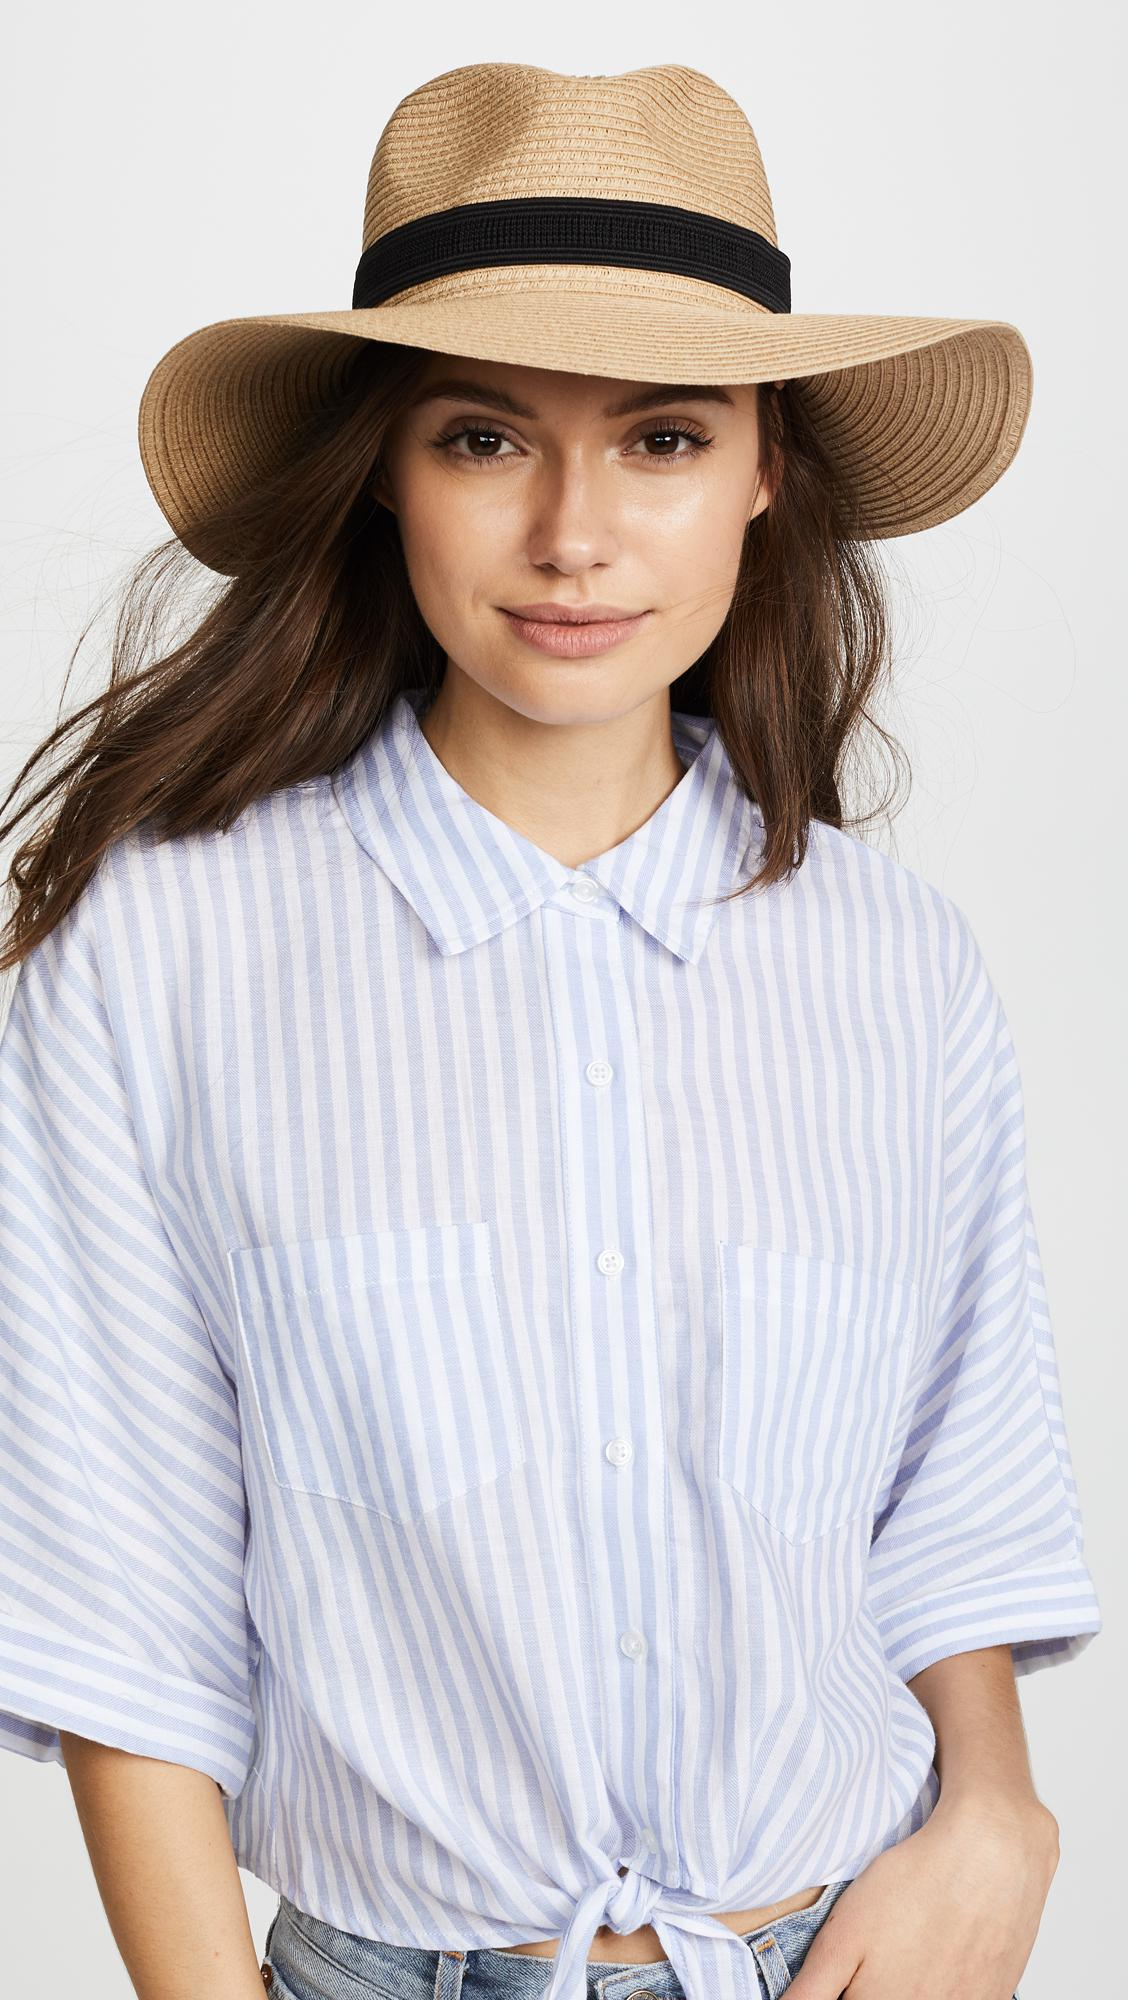 887f8068064 Madewell. Women s Packable Mesa Straw Hat